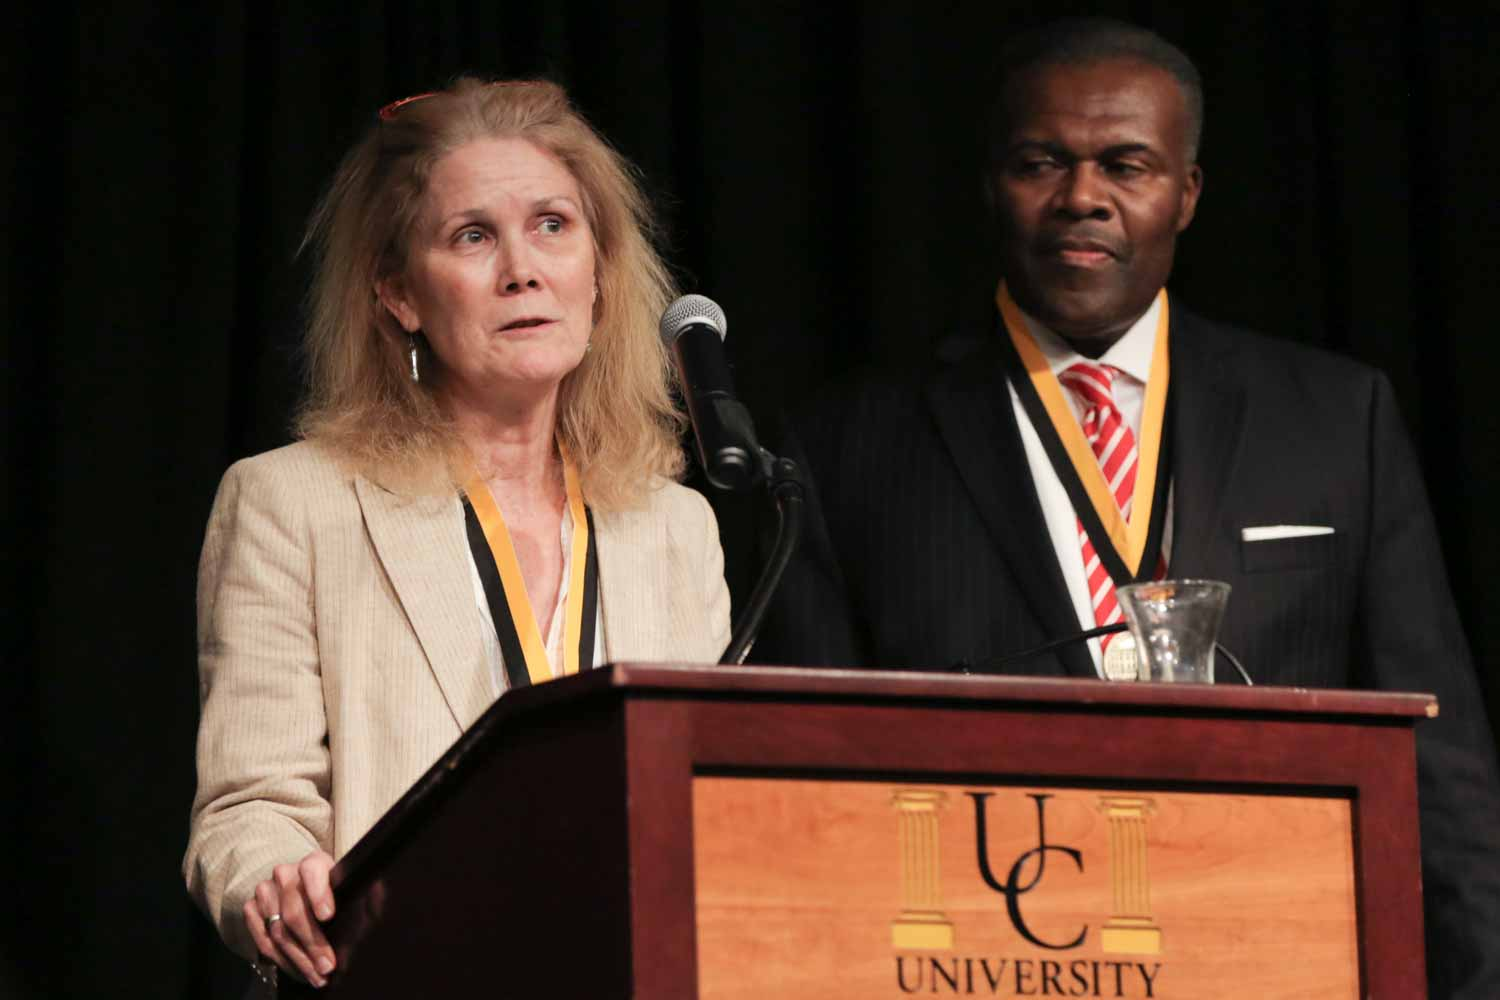 Sandy Rosenbush, an ESPN event news editor, accepts an honor medal on behalf of the Sports Journalism Institute, along with Leon Carter. The two are co-directors of the Institute, a nine-week training and internship program for college students interested in sports journalism careers. The Institute is designed to attract talented minorities and women to journalism through opportunities in sports reporting and editing as well as enhance racial and gender diversity in sports departments nationwide.